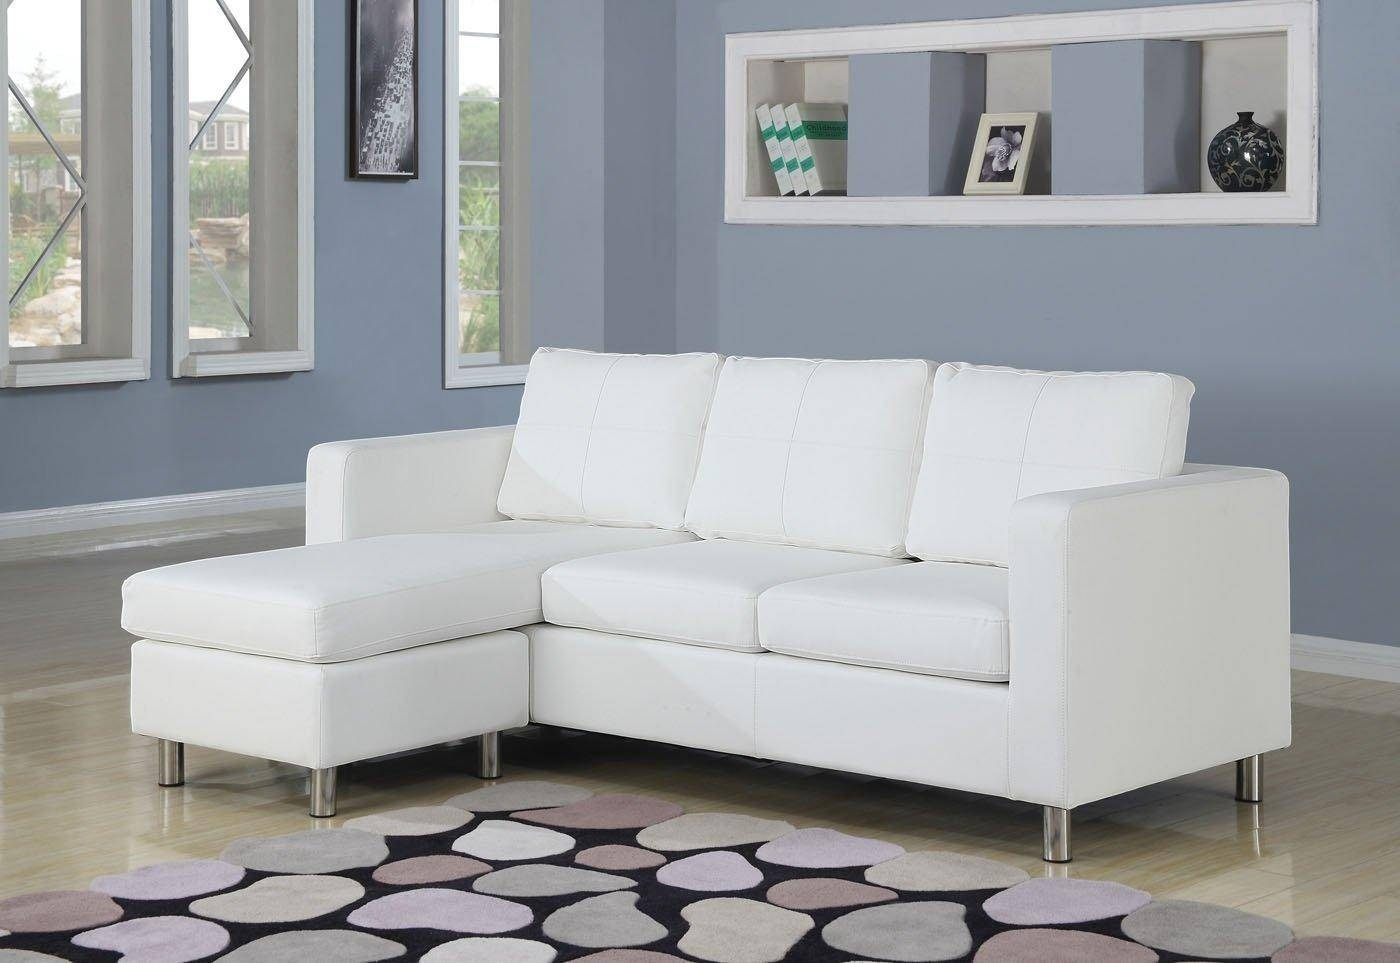 20+ Choices Of Small Scale Leather Sectional Sofas | Sofa Ideas With Regard To Small Scale Leather Sectional Sofas (View 4 of 15)